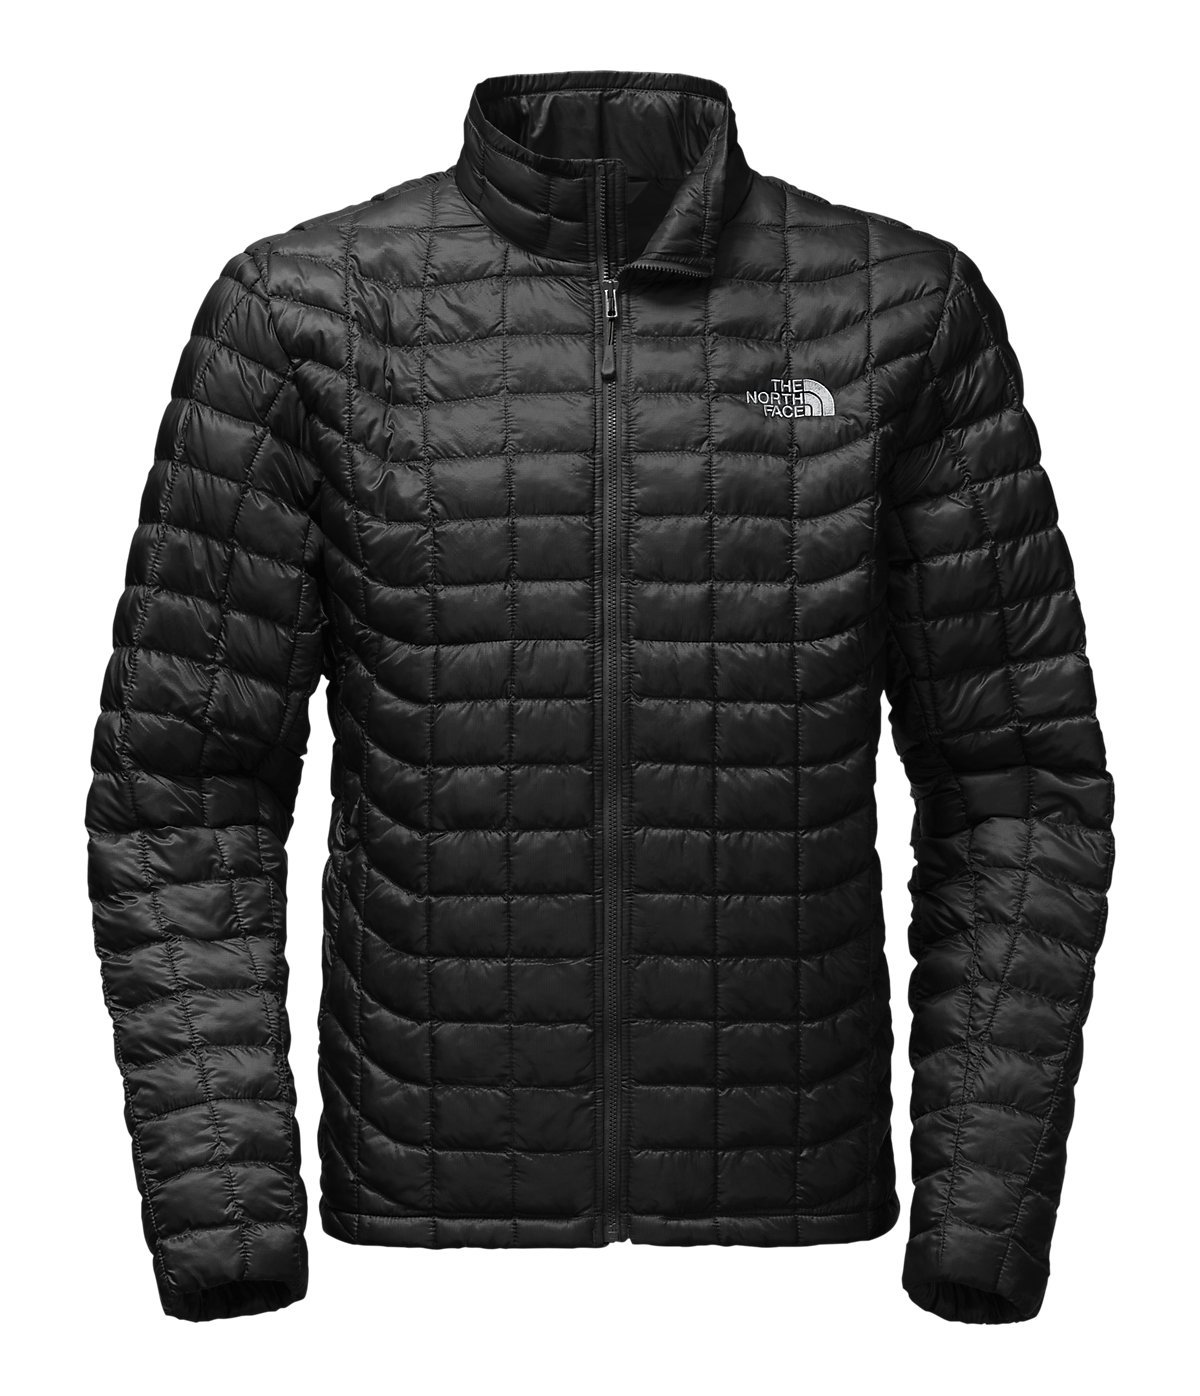 Amazon.com: The North Face Thermoball Jacket: THE NORTH FACE ...